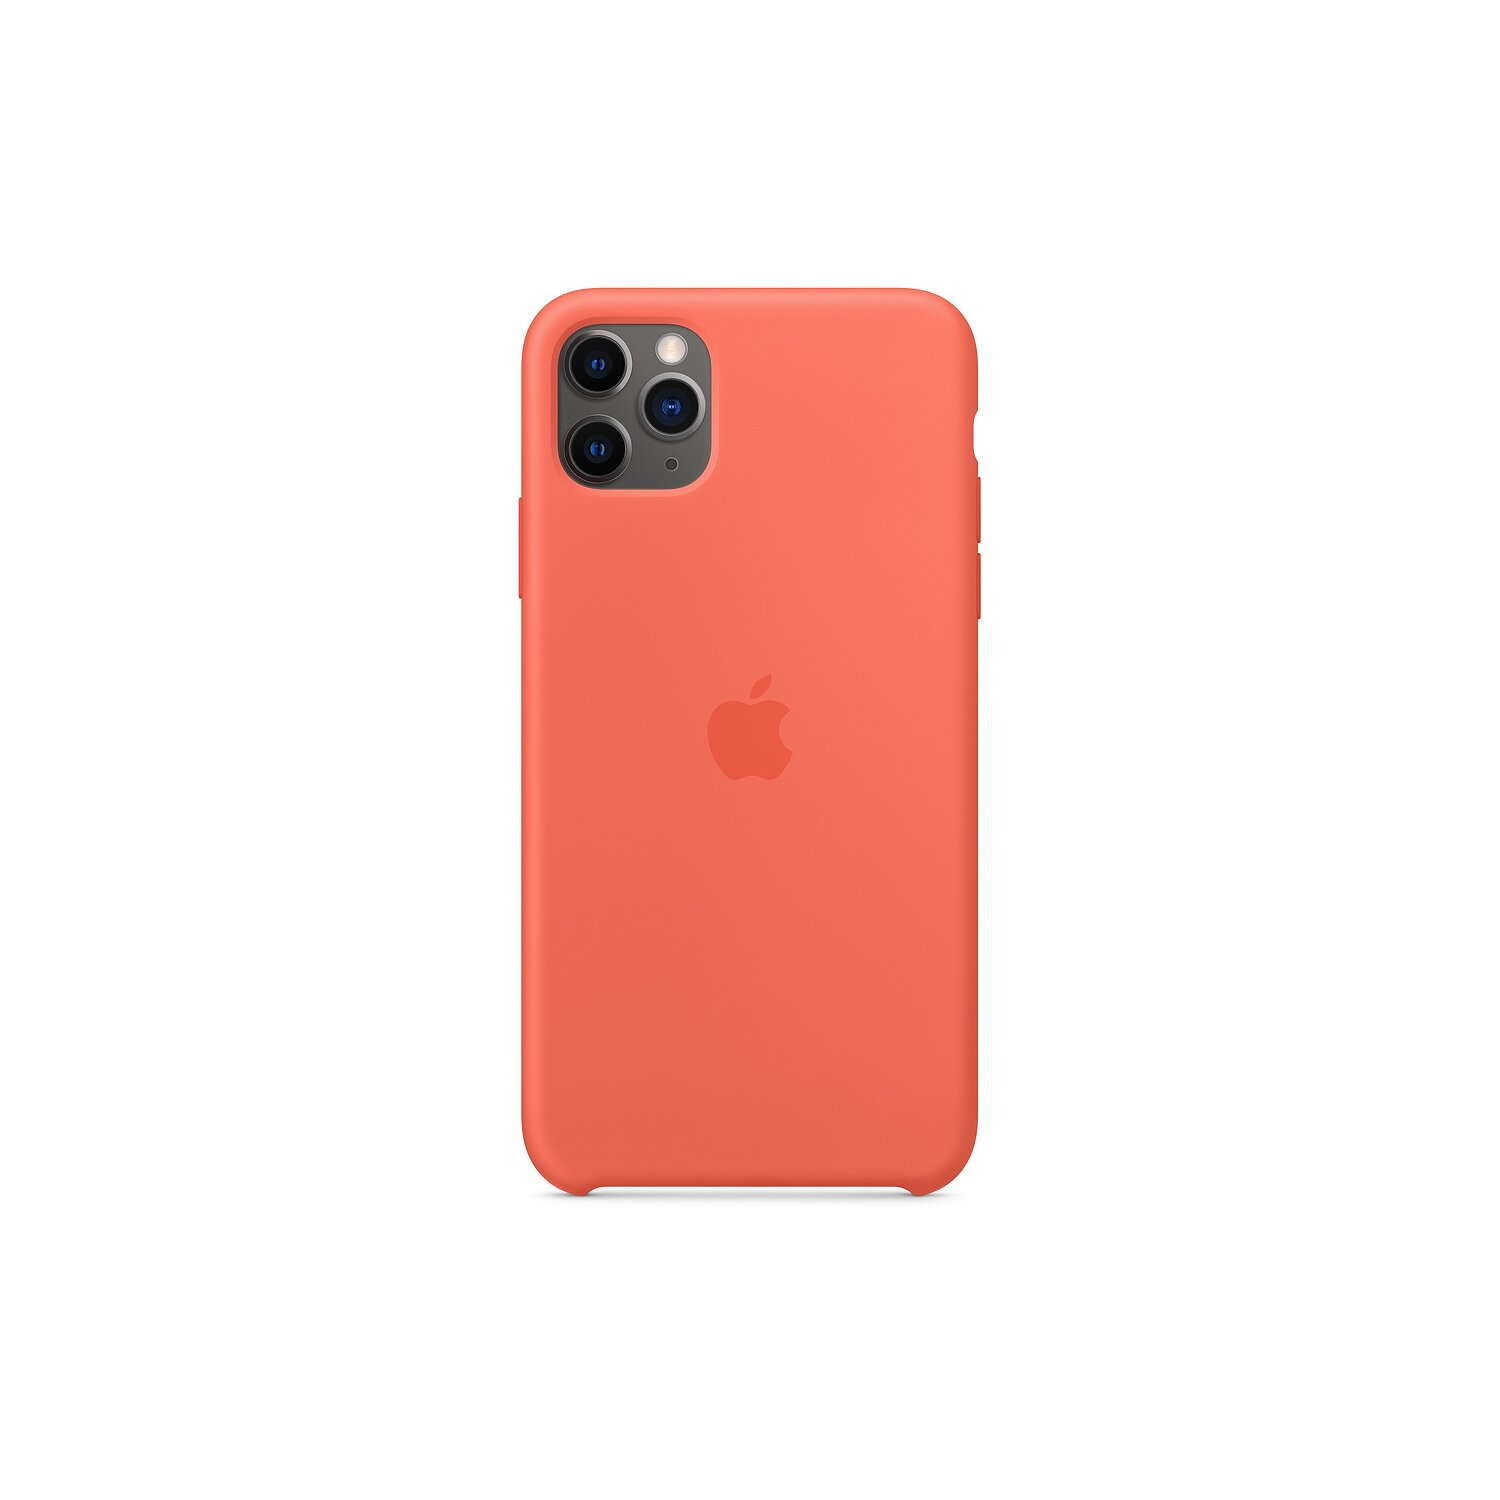 Etui APPLE Silicone Case do iPhone 11 Pro Jasnopomarańczowy MWYQ2ZM/A